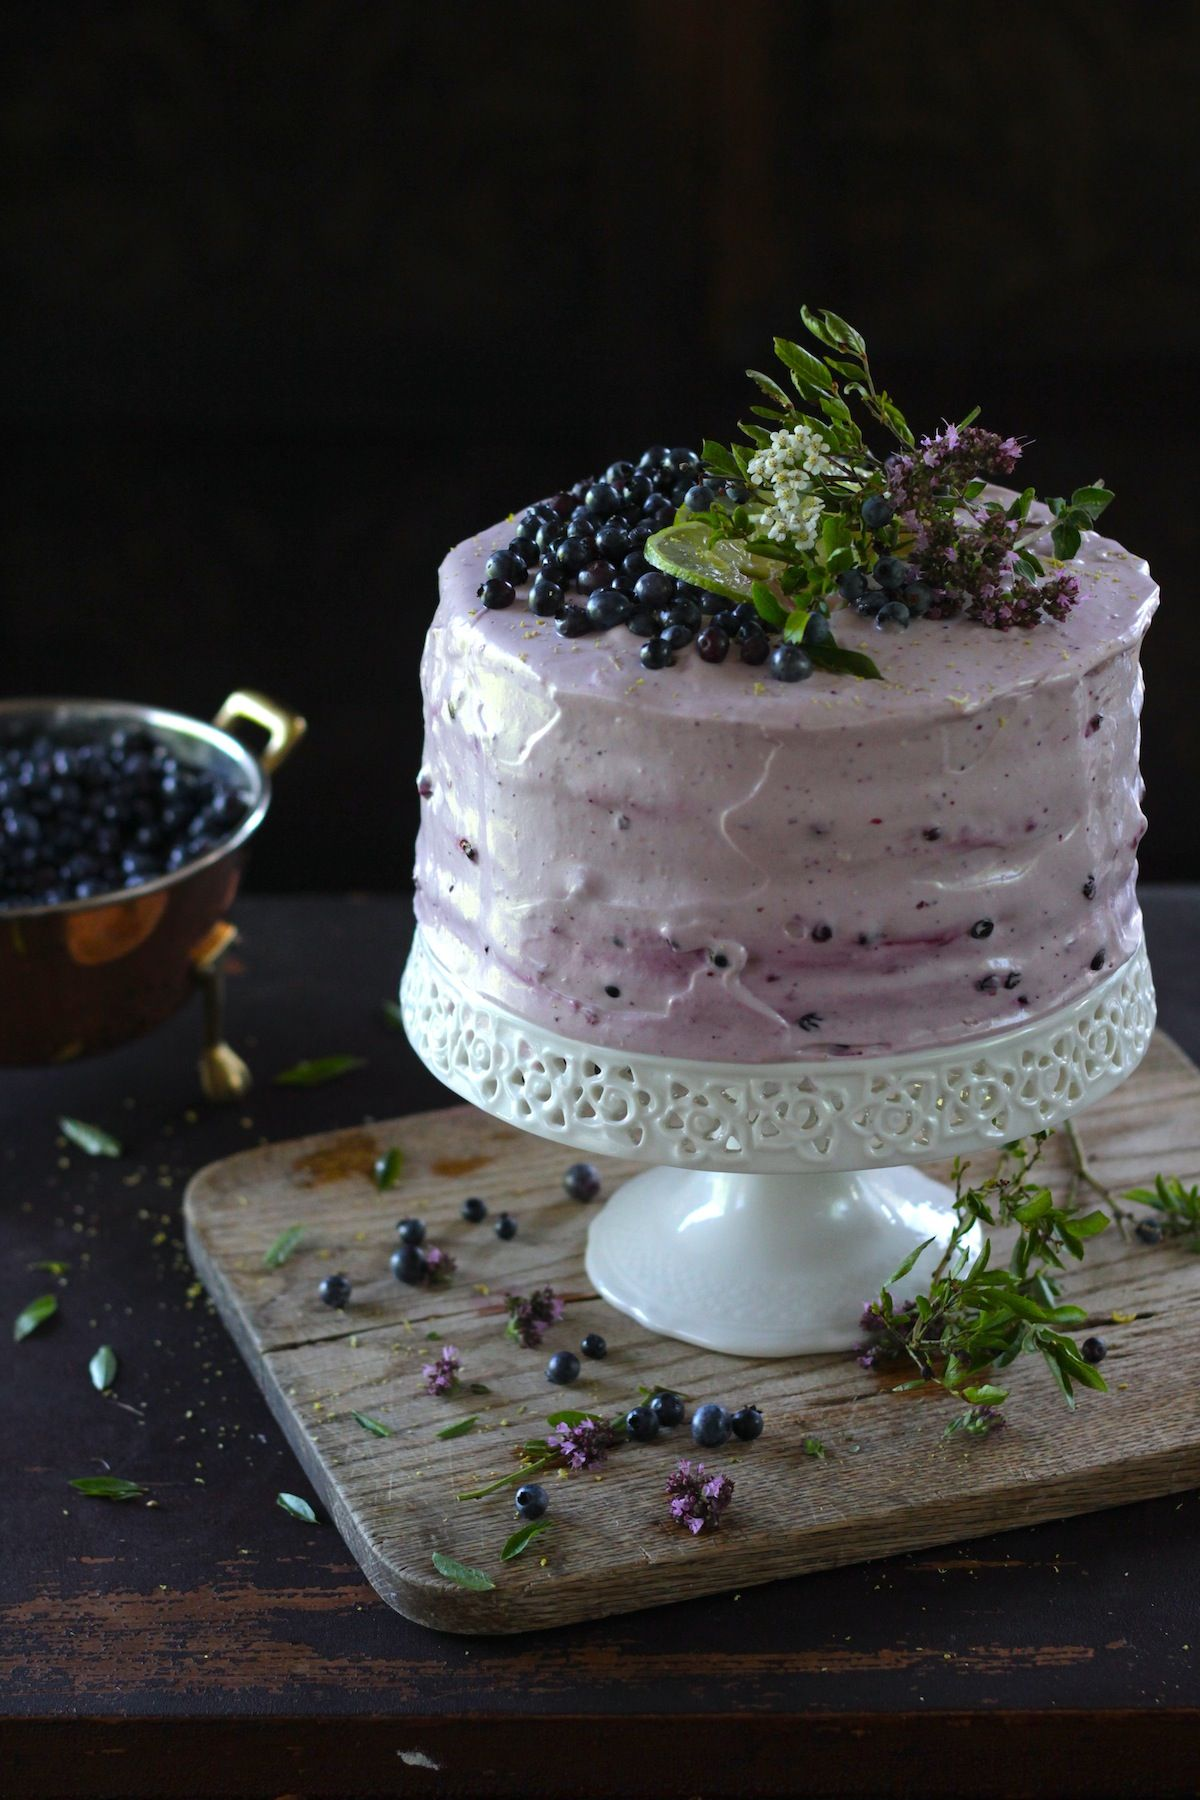 Blueberry cake recipe with cream cheese icing